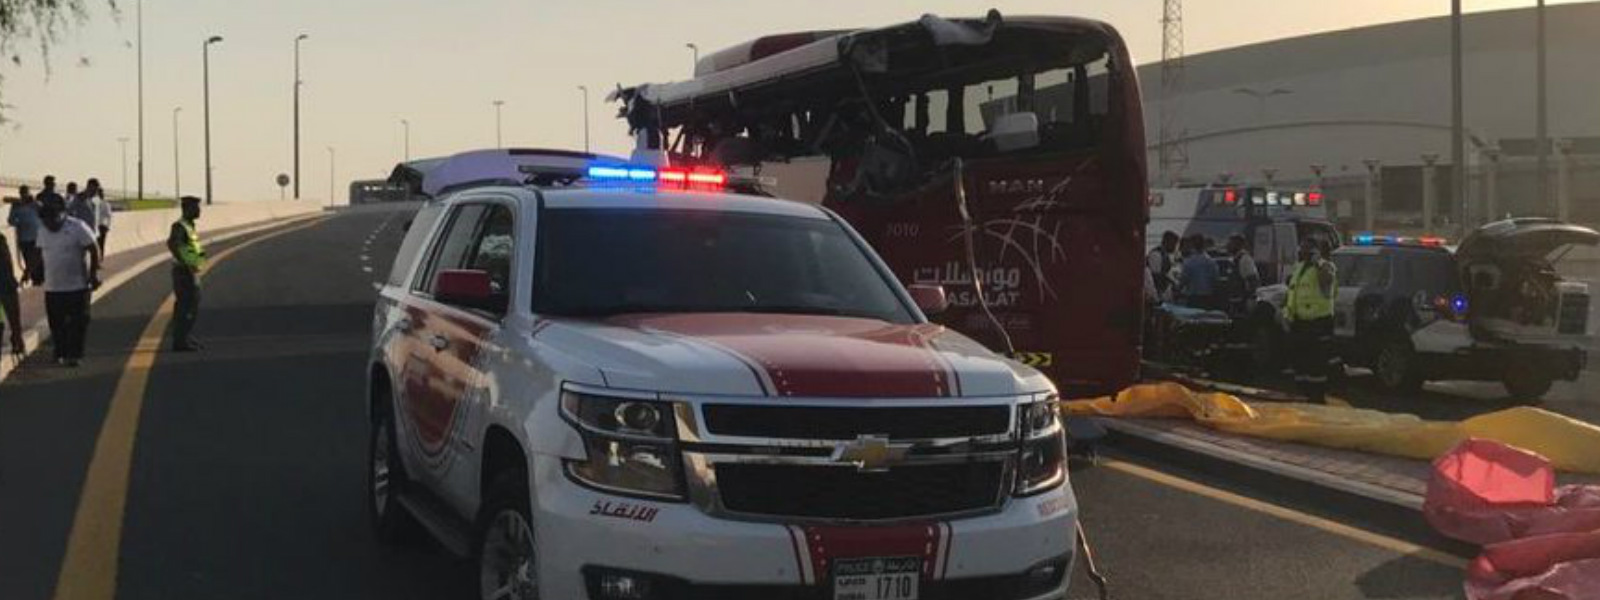 Dubai bus crash: 17 dead after bus hits overhead sign